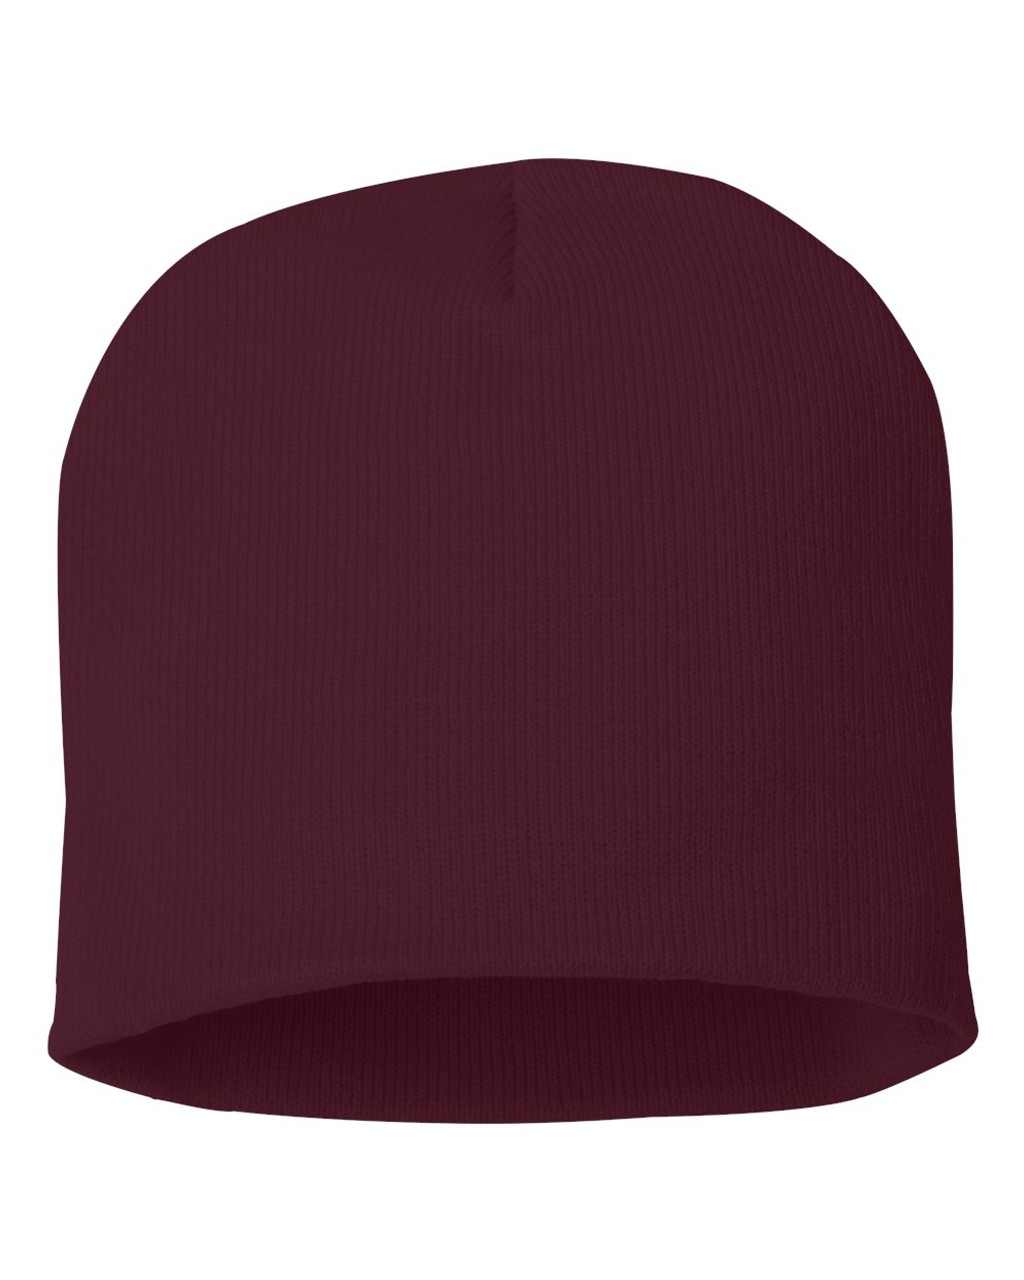 "Maroon - SP08 Sportsman Acrylic Knit 8"" Toque 